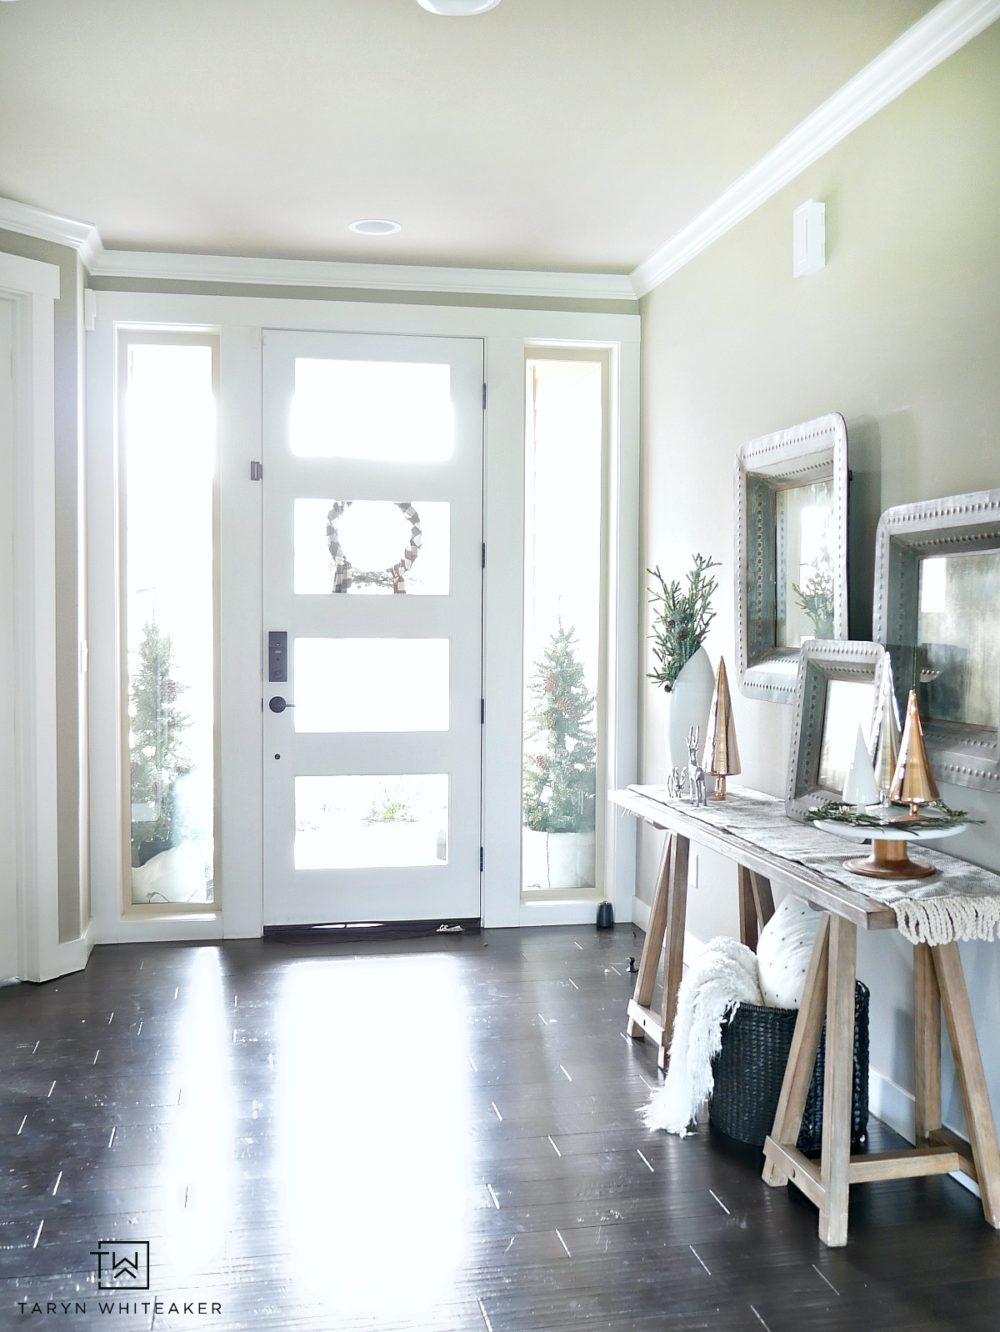 Simple, serene entryway that focuses on clean lines and pops of texture. This Christmas Entry way is filled with simple yet meaningful decor.